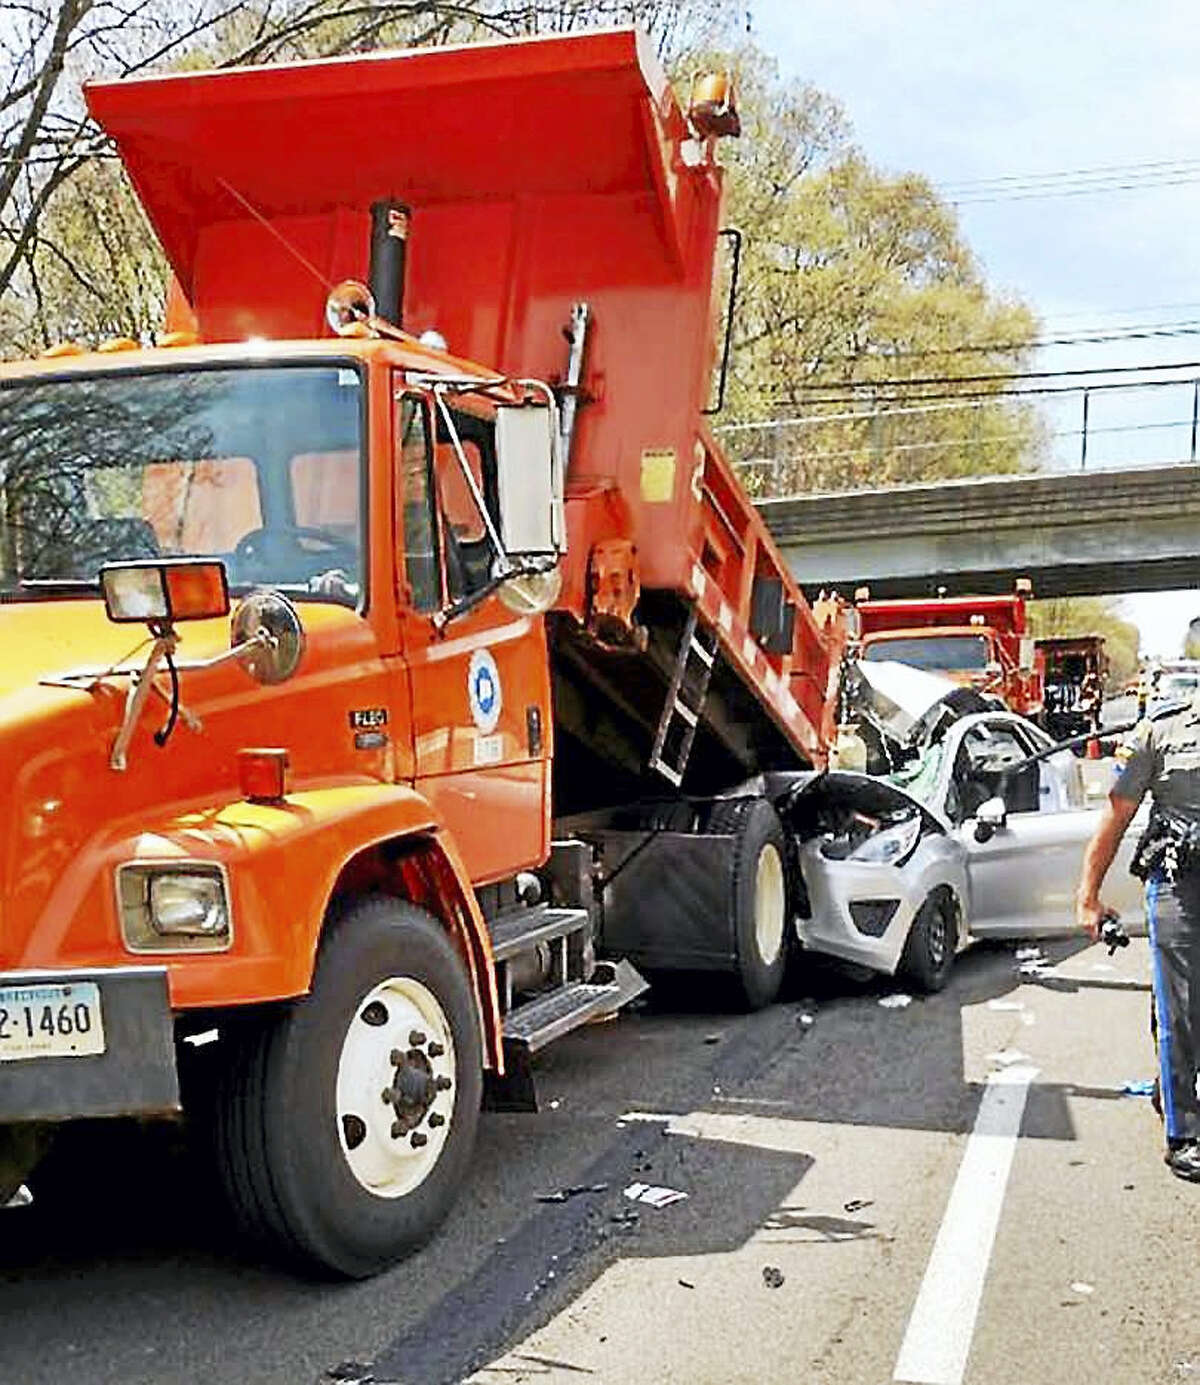 (Photos via Facebook from the CT Work Zone Safety campaign) Two people were taken to the hospital Tuesday after a car crashed into a state Department of Transportation construction truck on Interstate 95 in Old Lyme.